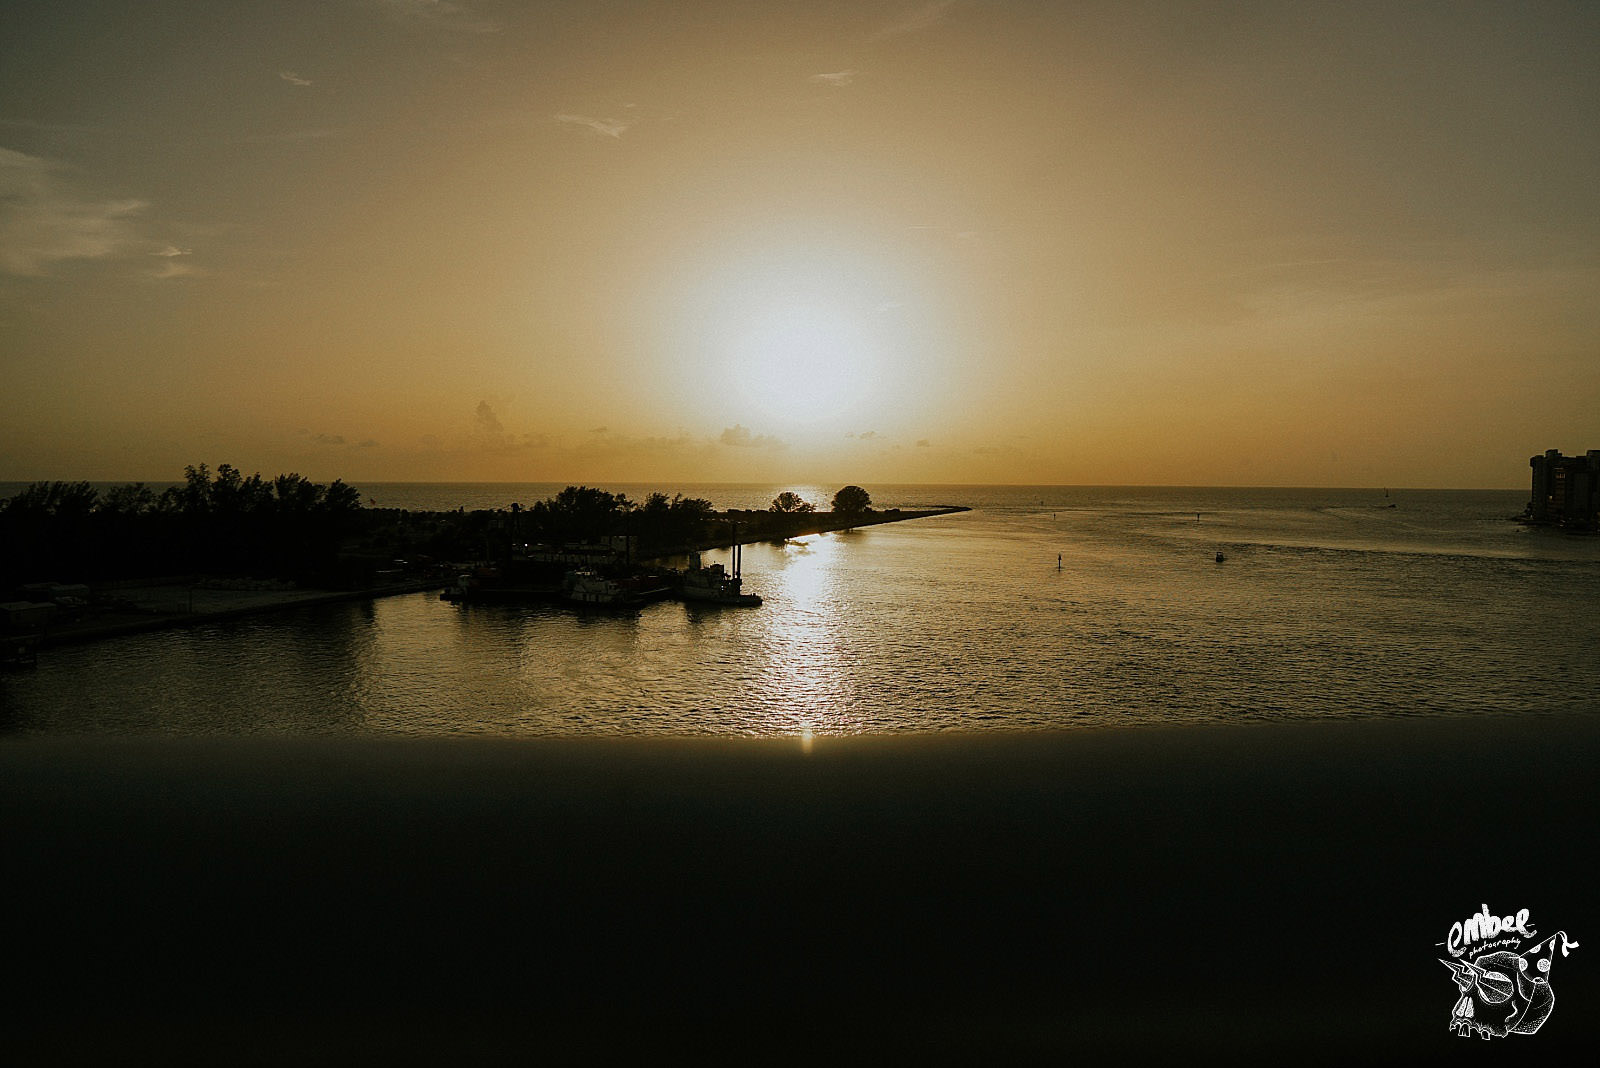 sunset view over clear water in tampa bay